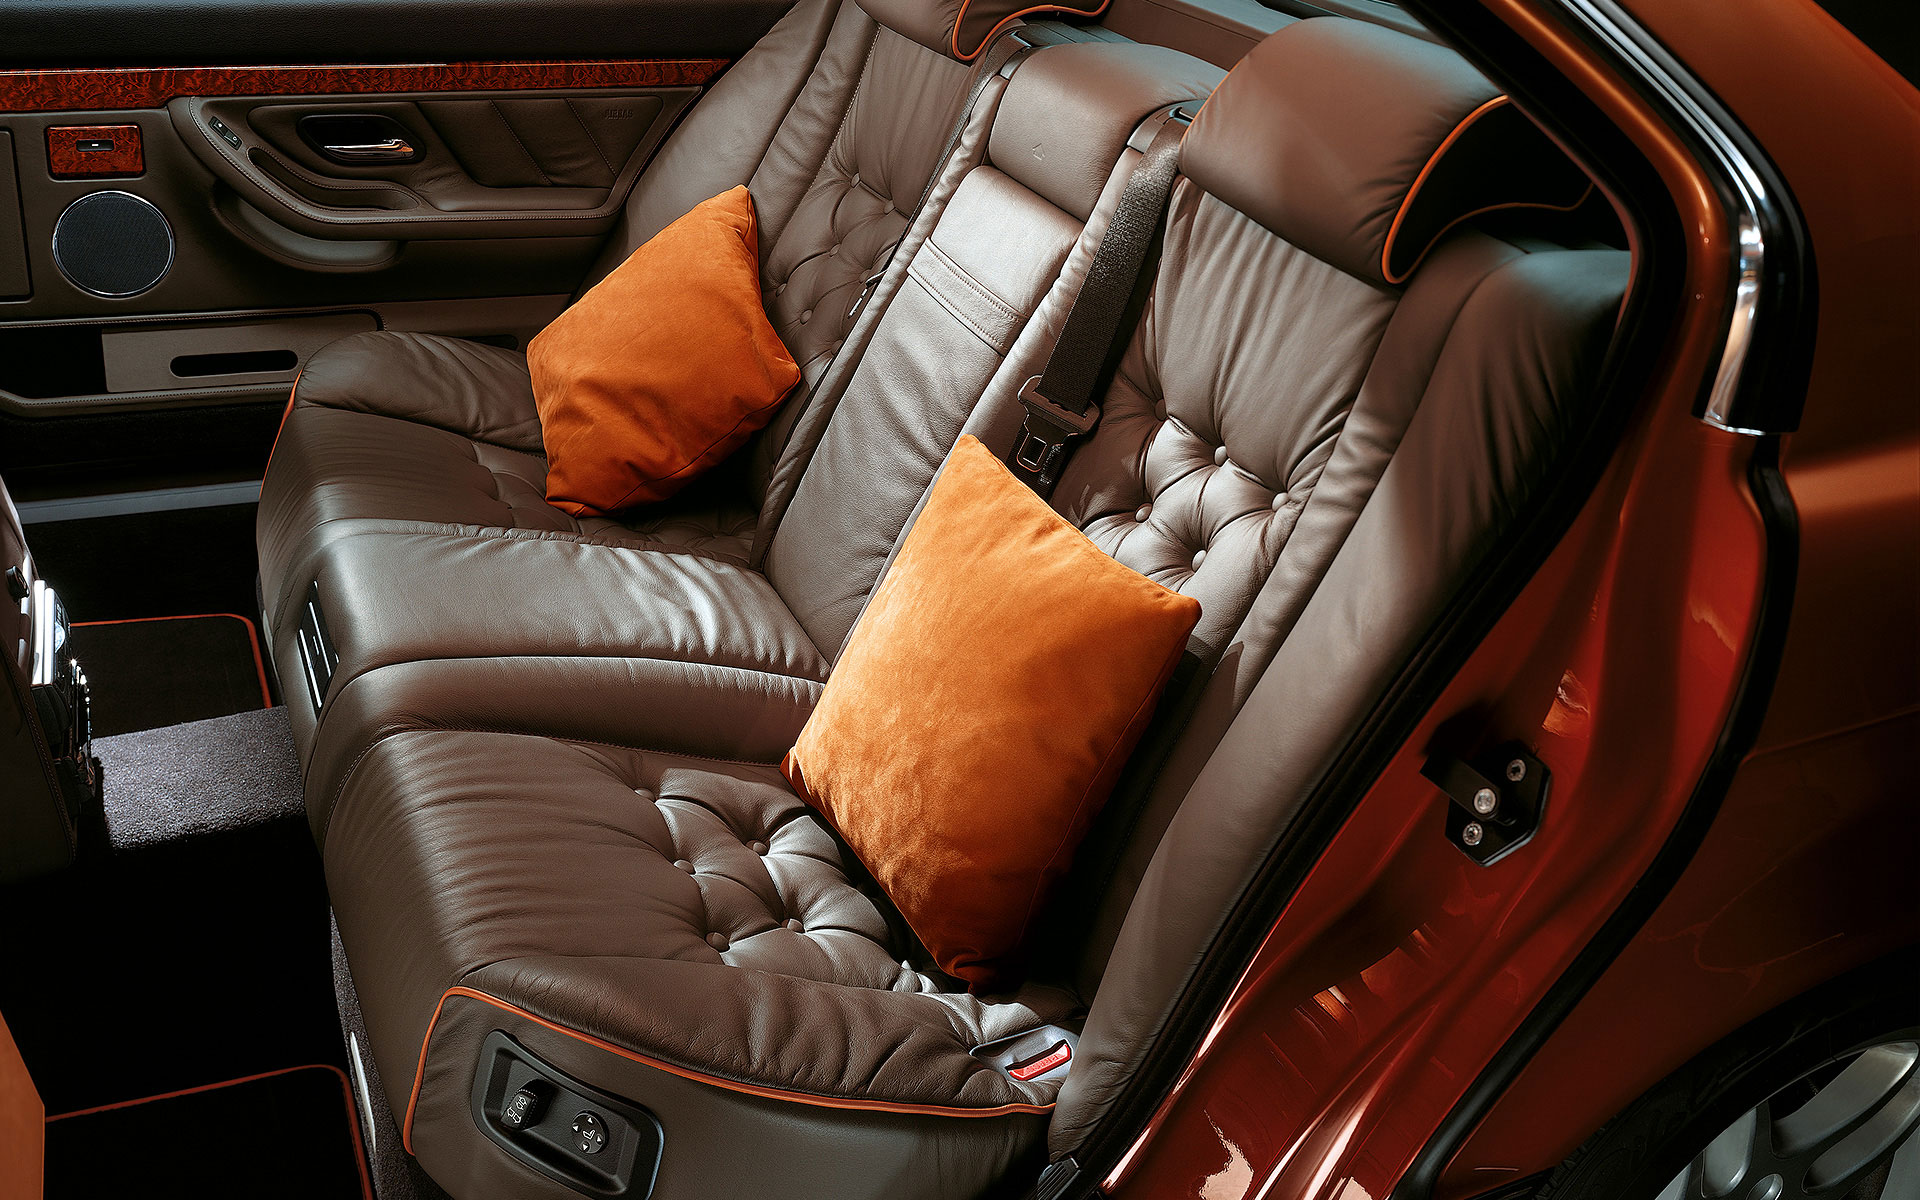 BMW 7 Series designed by Karl Lagerfeld Interior